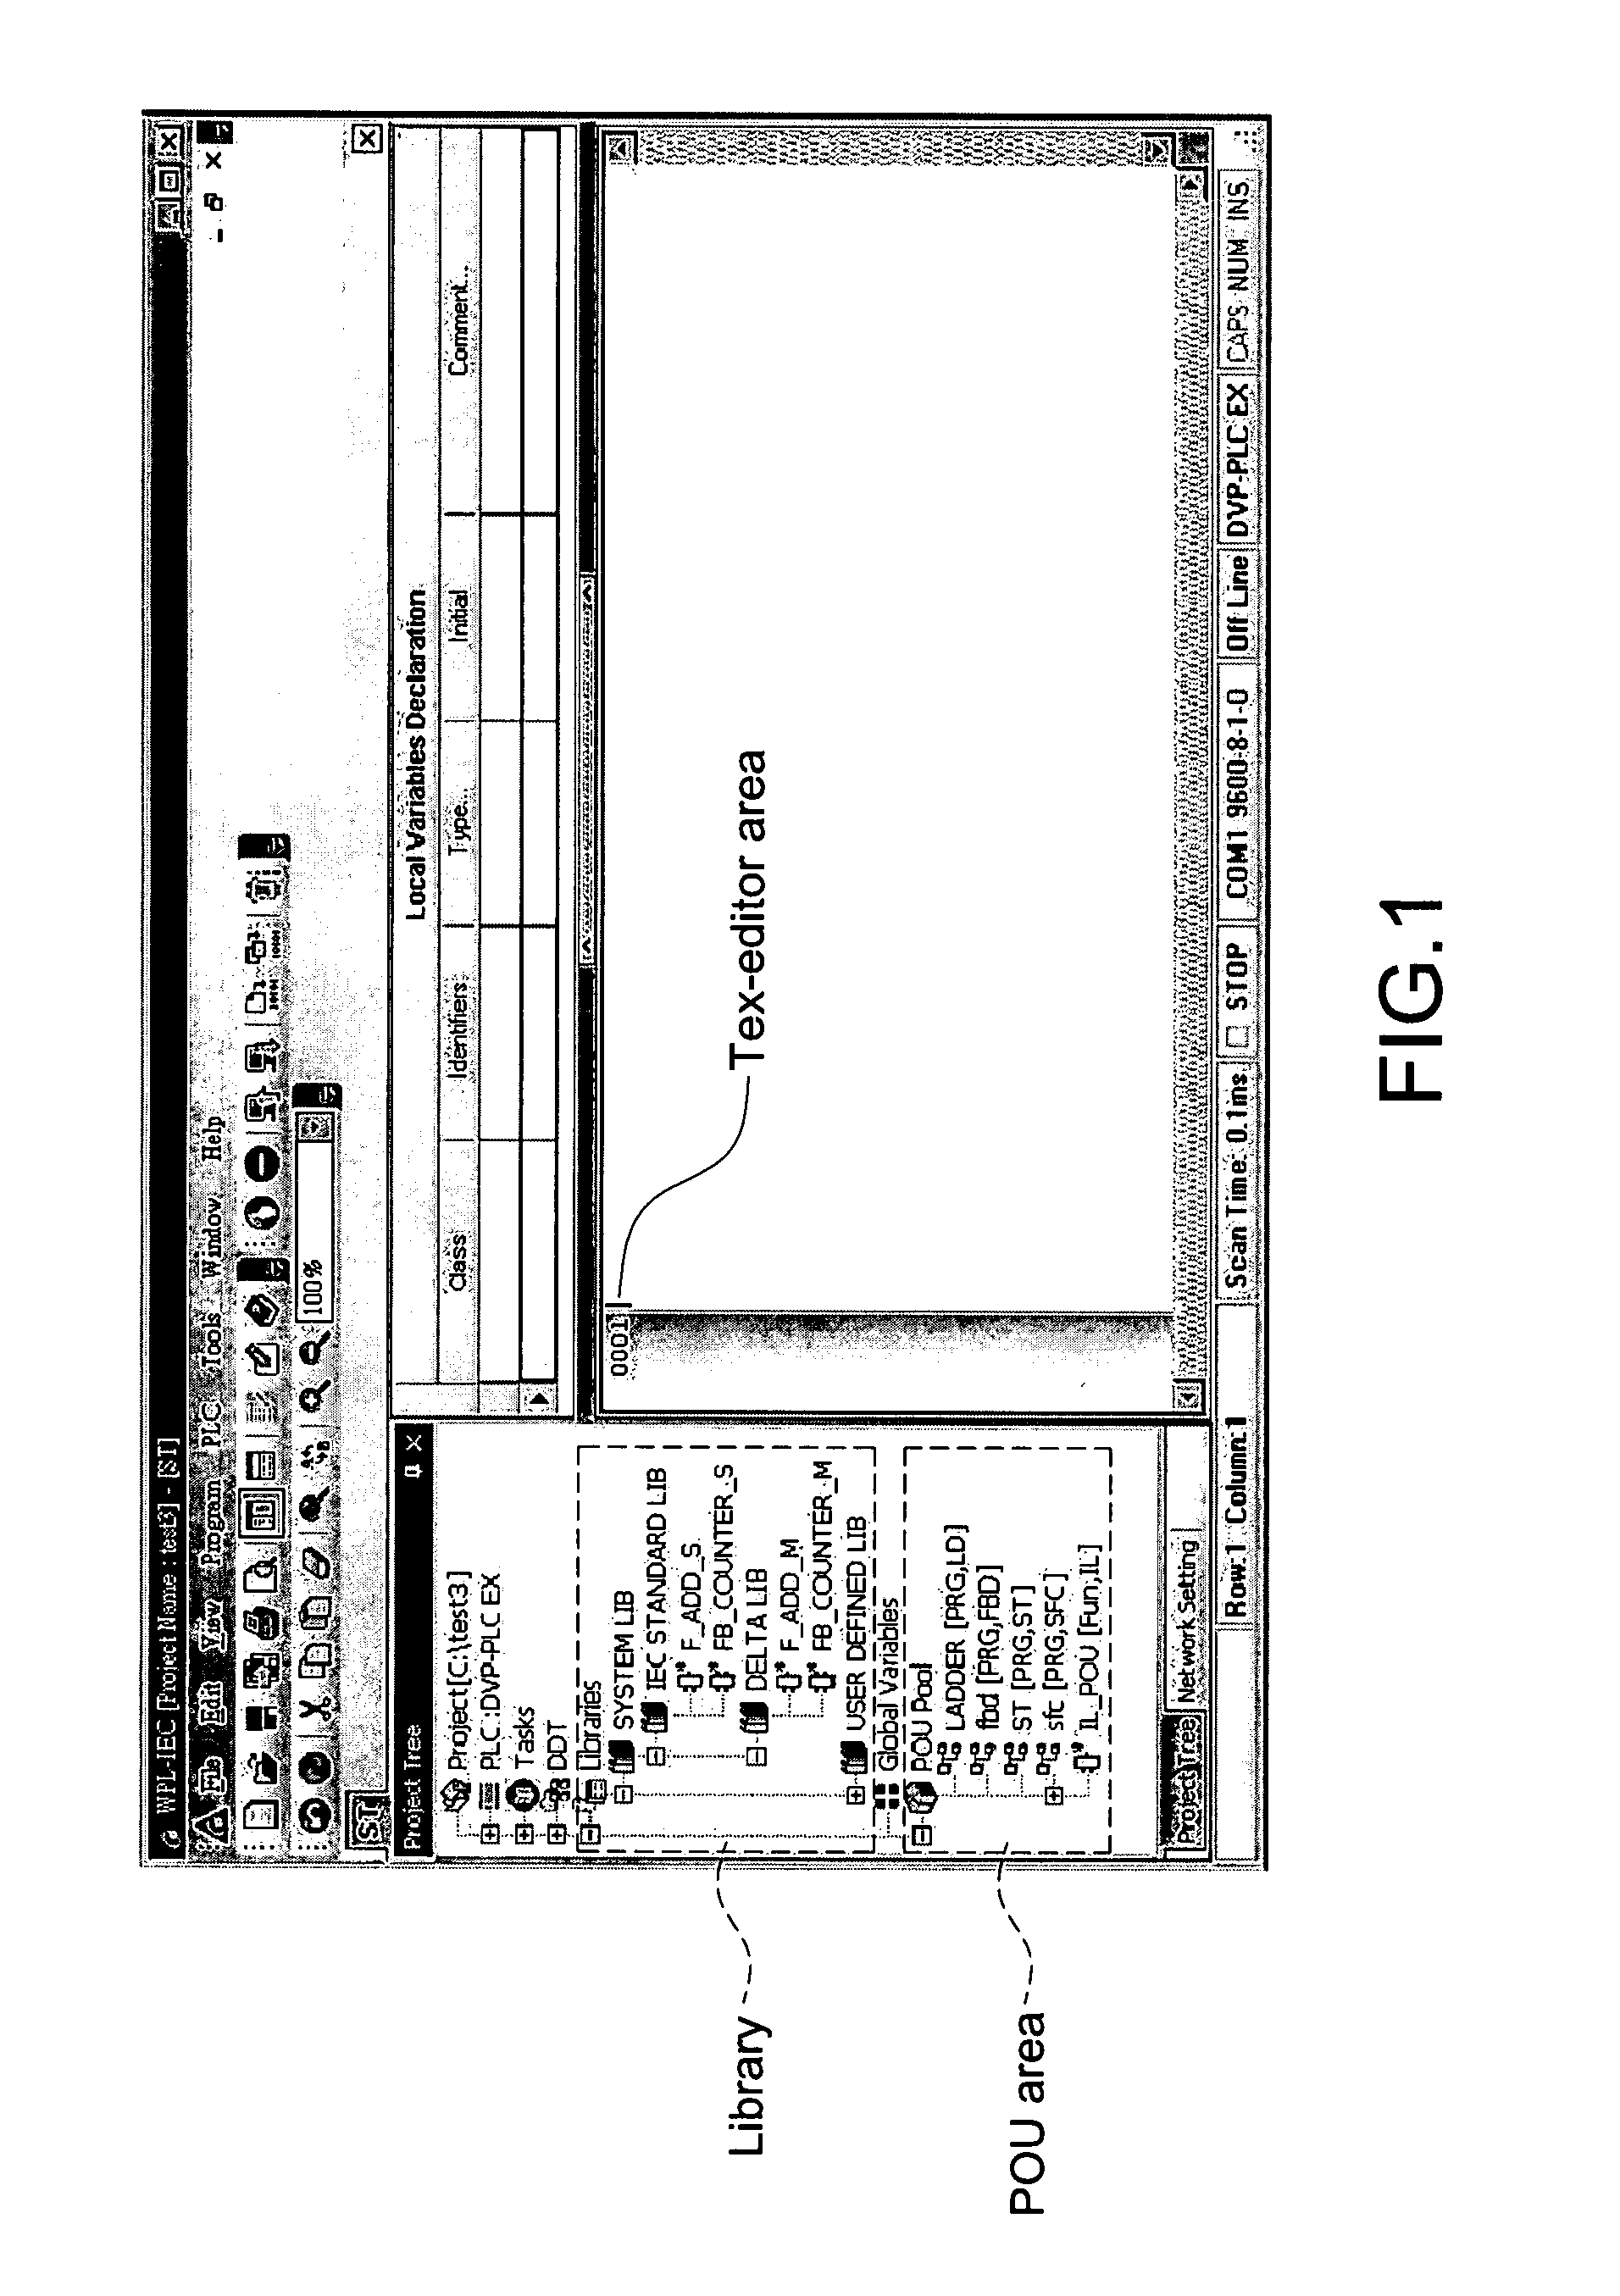 Patent US20090064103 - Method for editing programmer logic